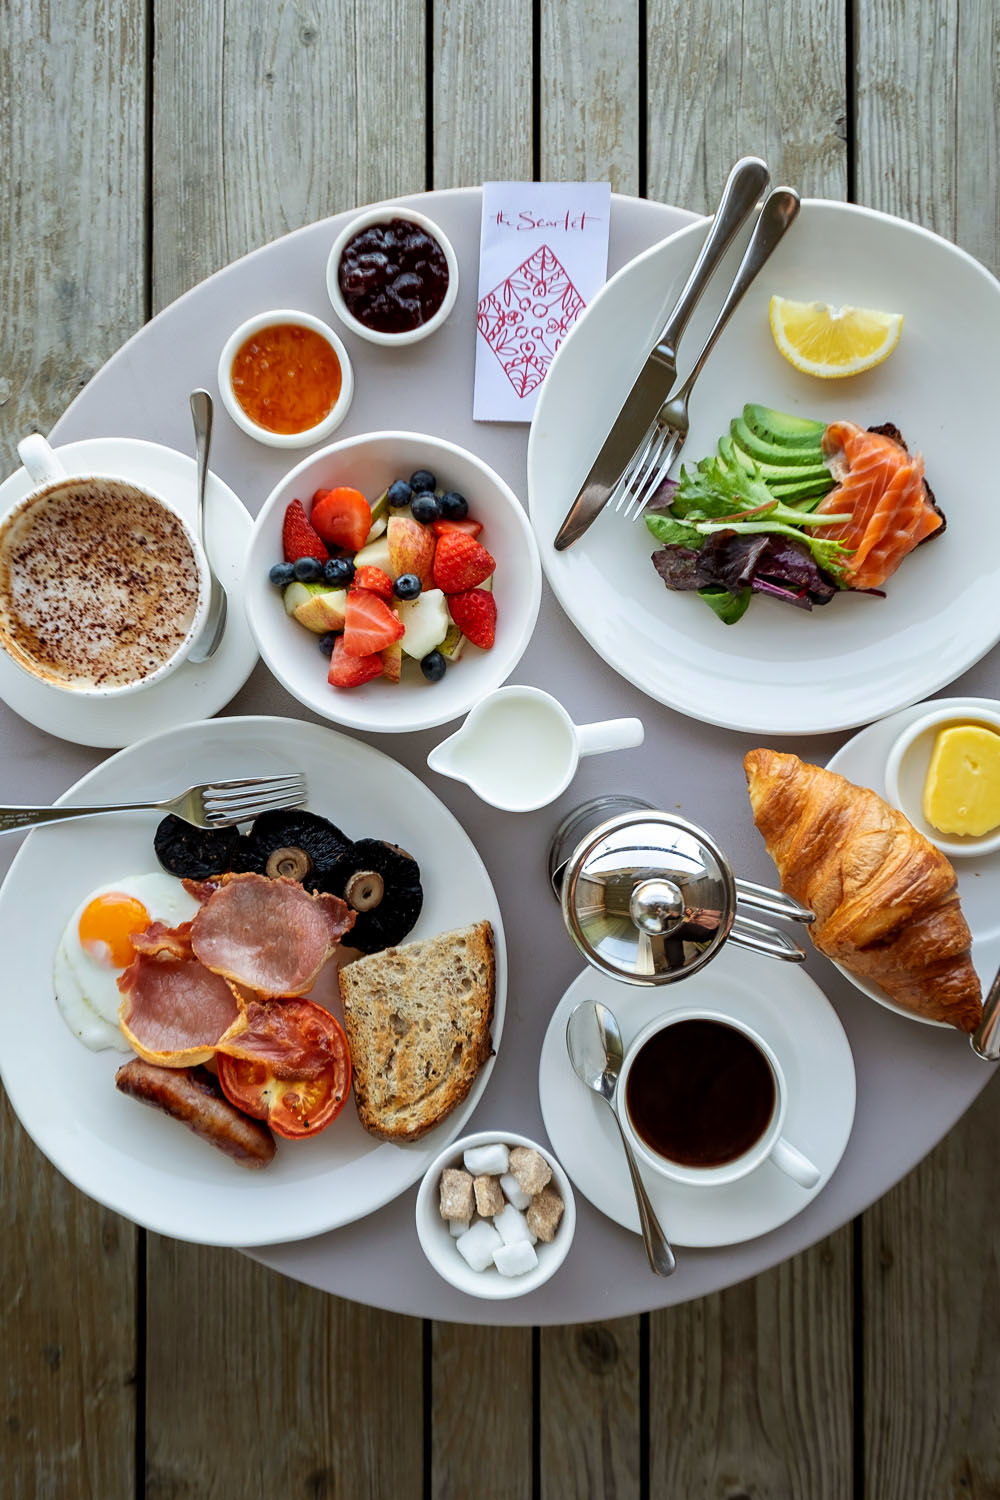 Breakfast at The Scarlet Hotel | A 5-day guide to beautiful Cornwall by Mondomulia